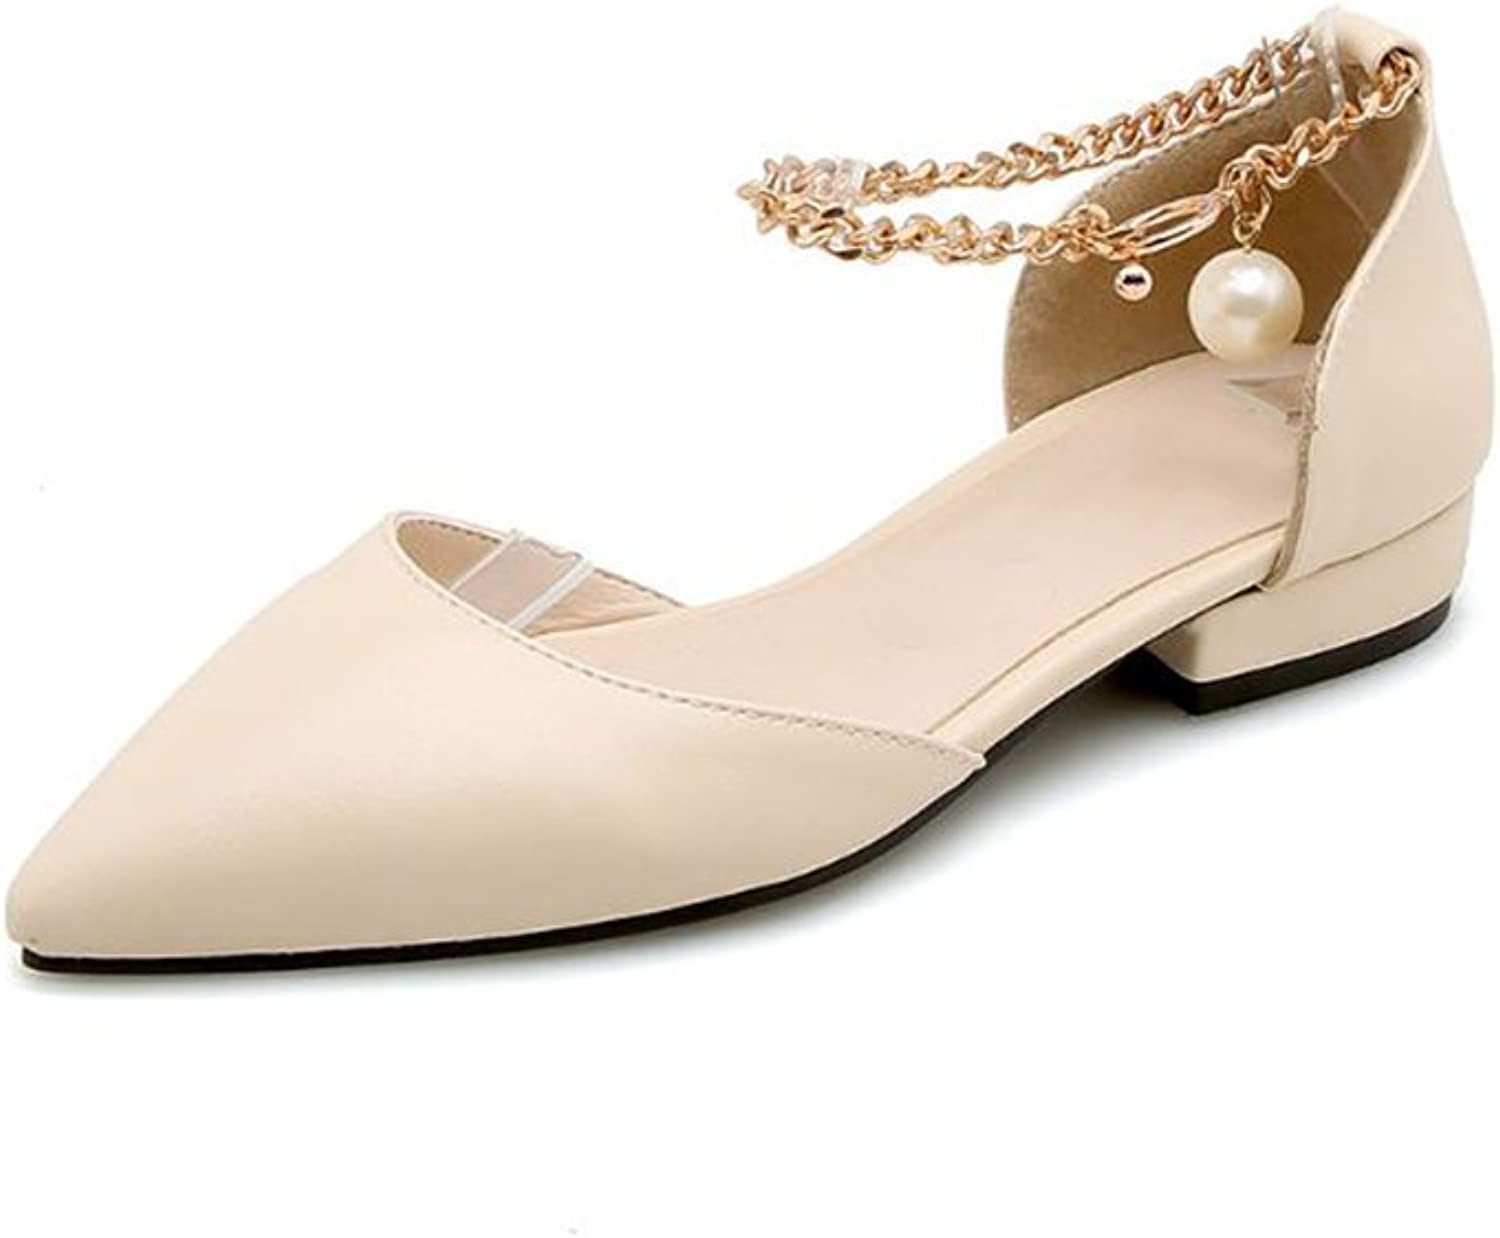 Women's Comfortable Pearl Leather Flat shoes Slip On Ballet Flats Casual Loafer